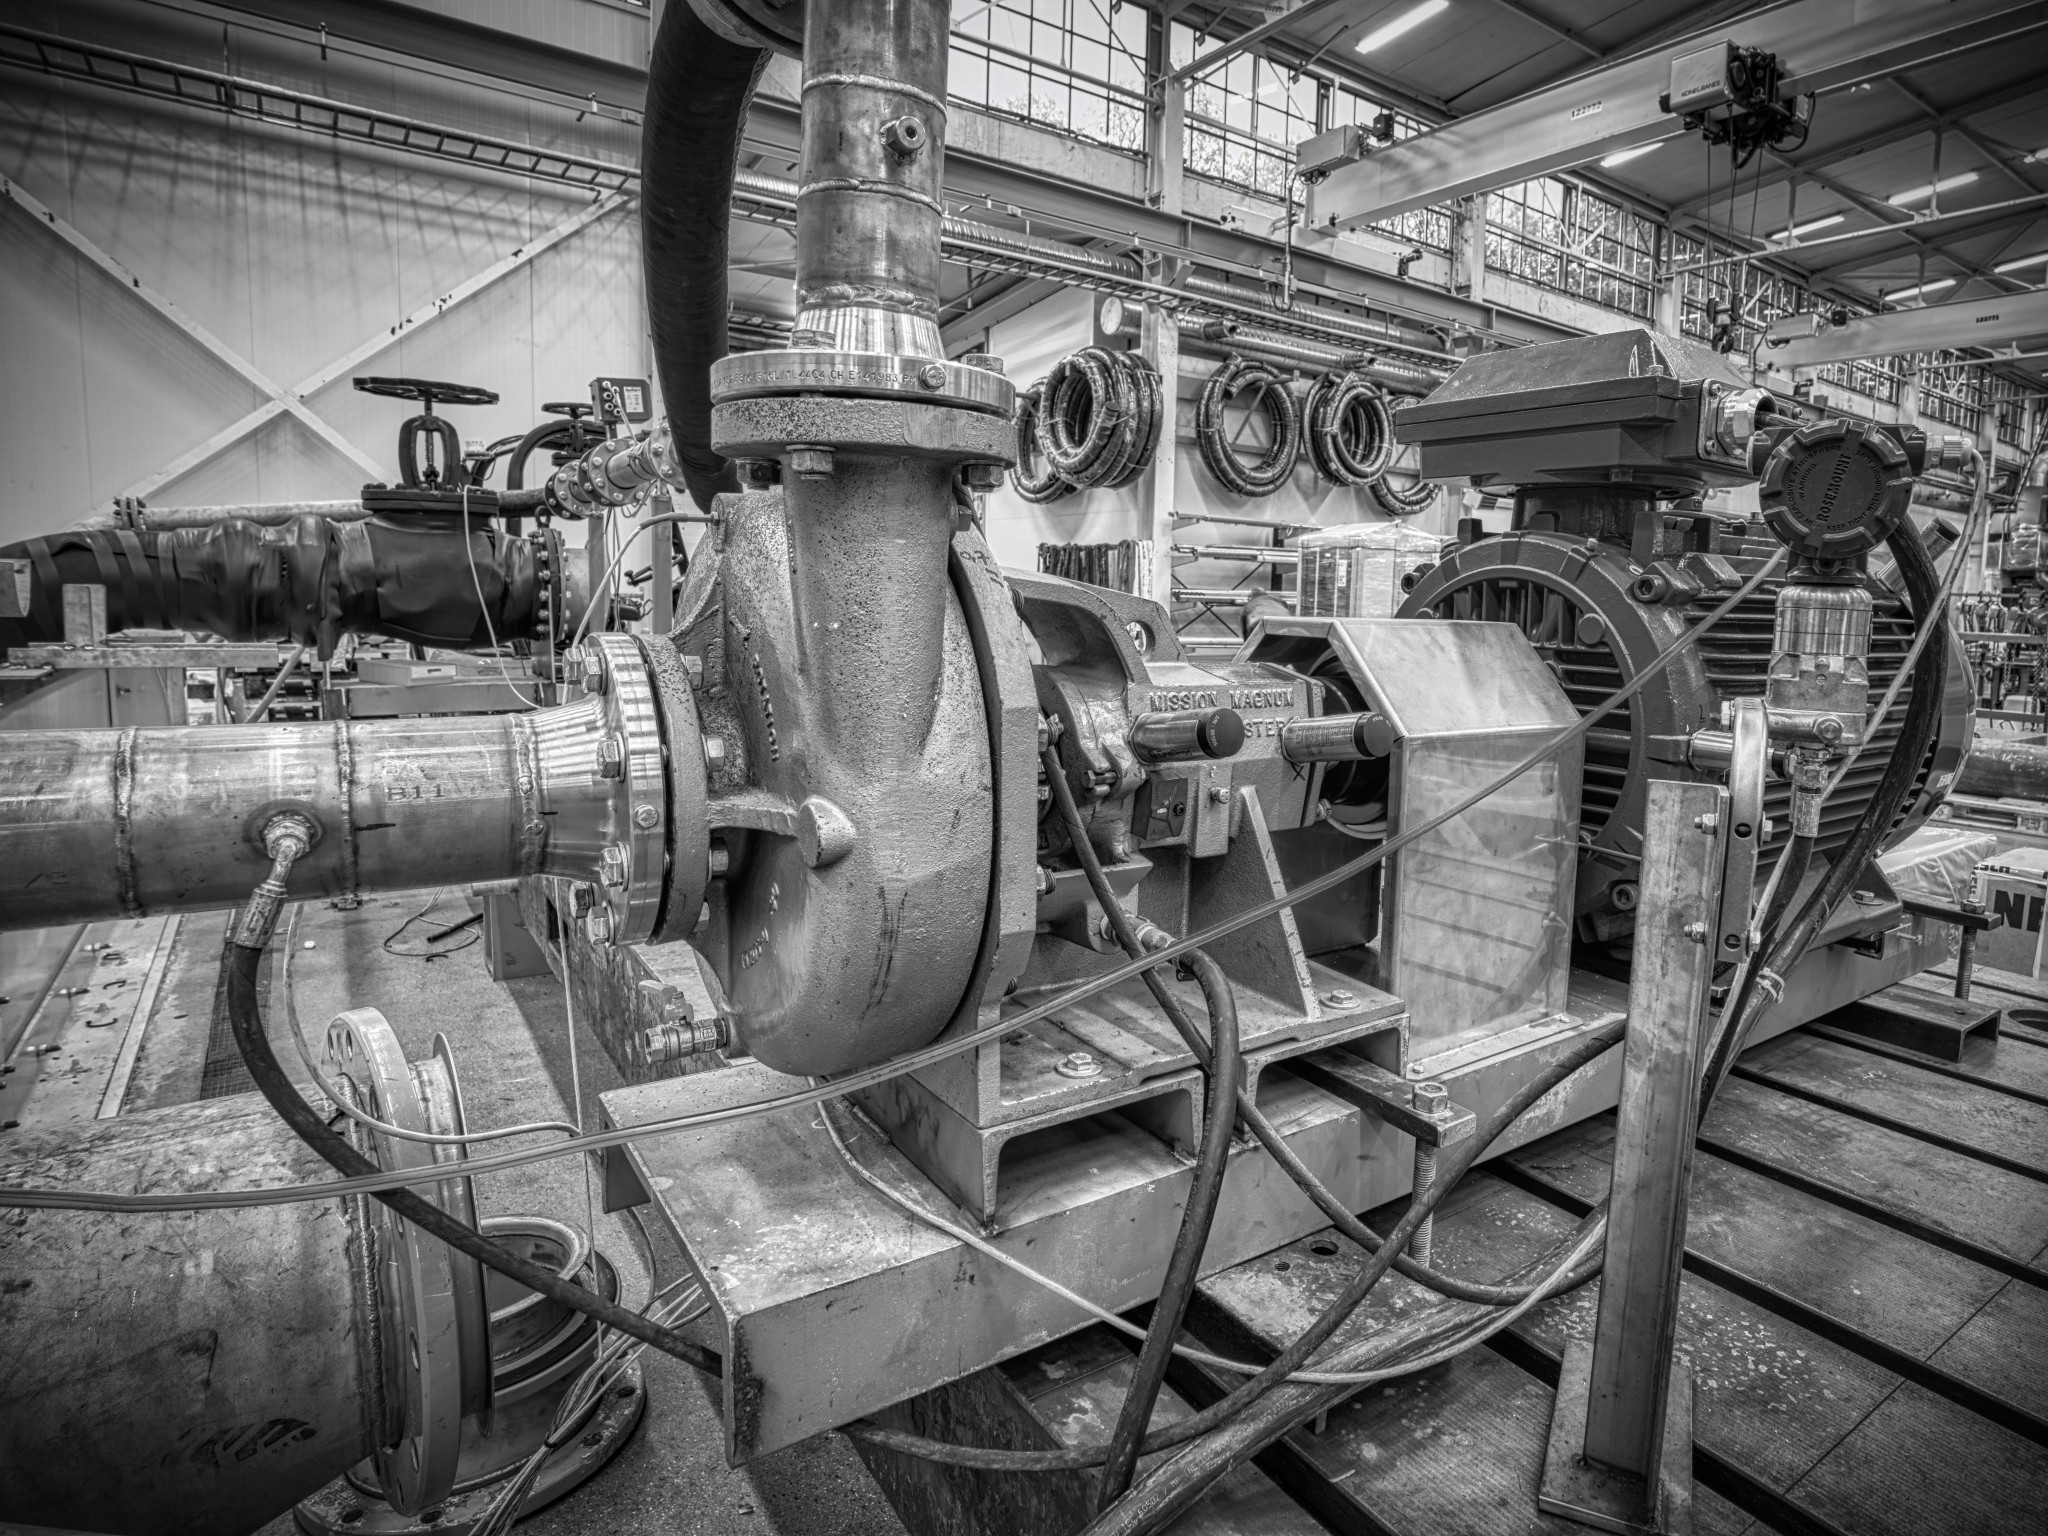 Industrial pump photo by Christian Egeberg